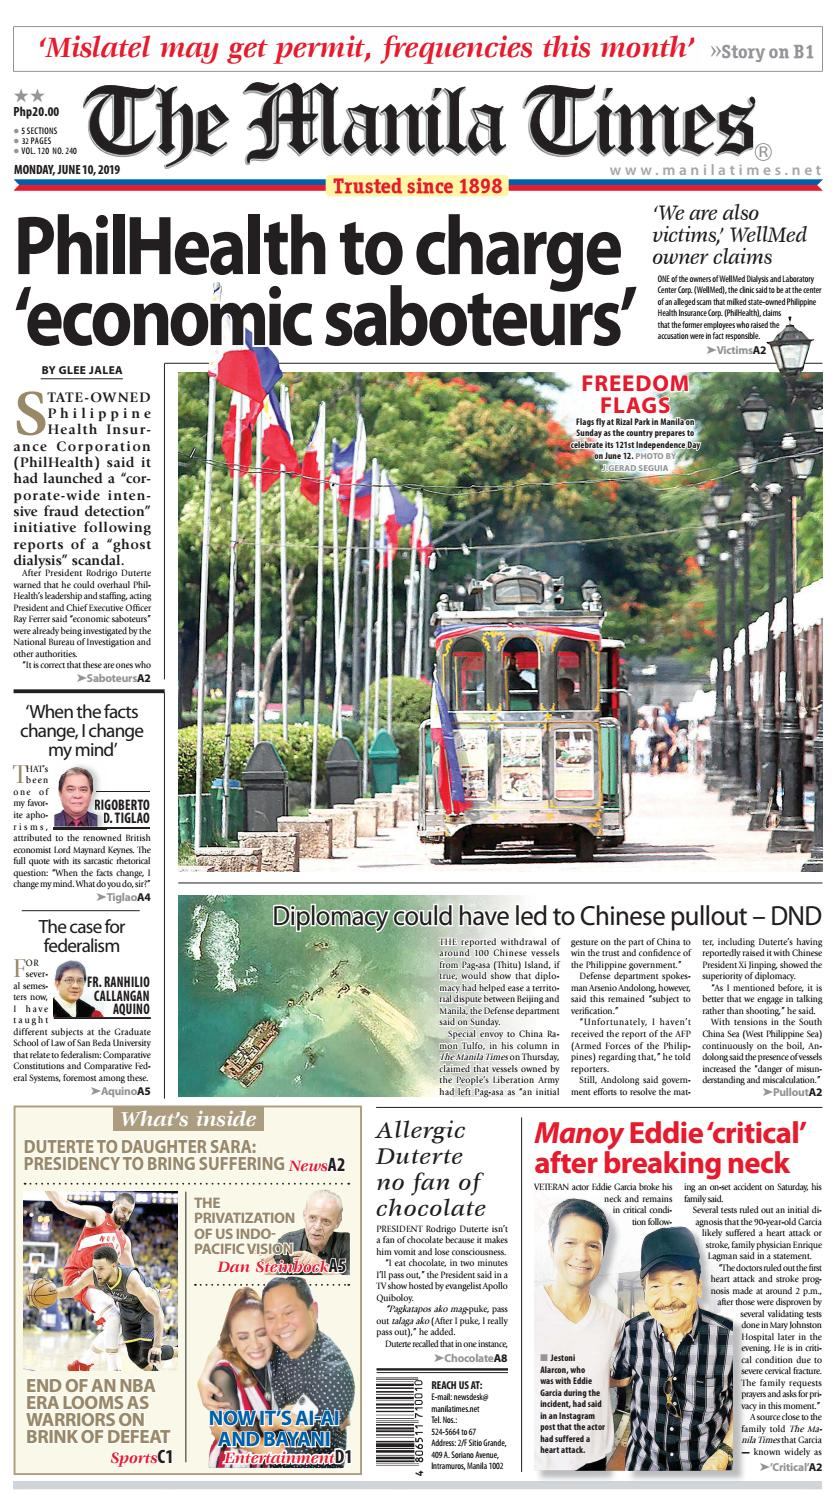 525970a57 THE MANILA TIMES | JUNE 10, 2019 by The Manila Times - issuu